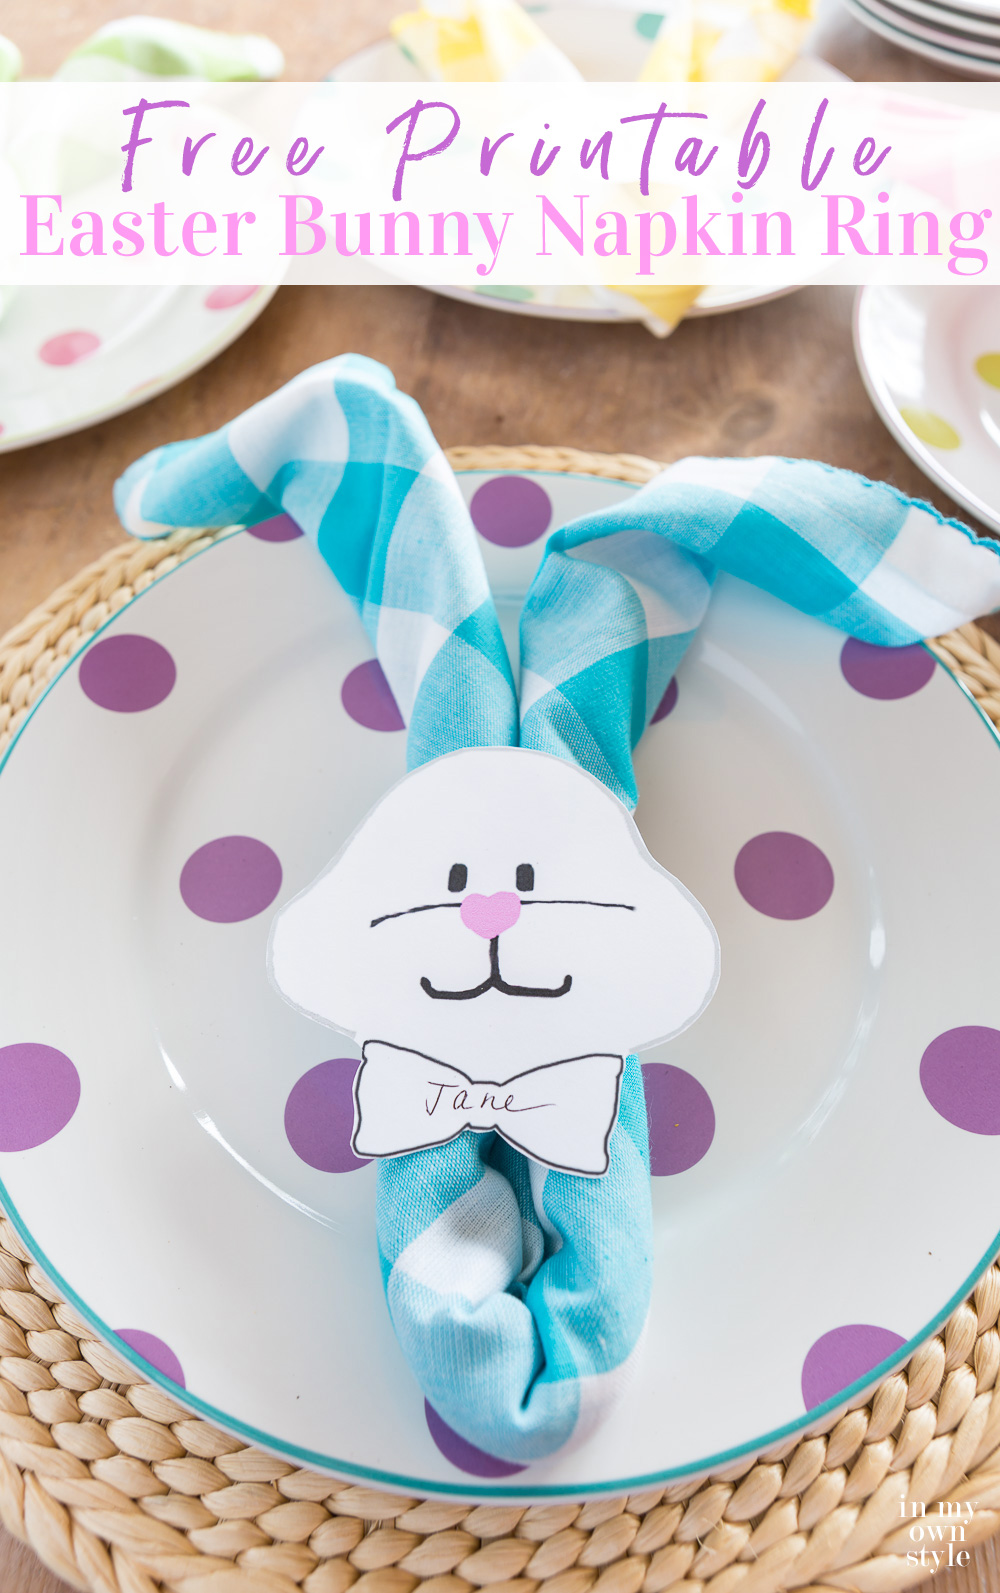 Easter table setting idea using napkins to resemble a clothEaster Bunny.